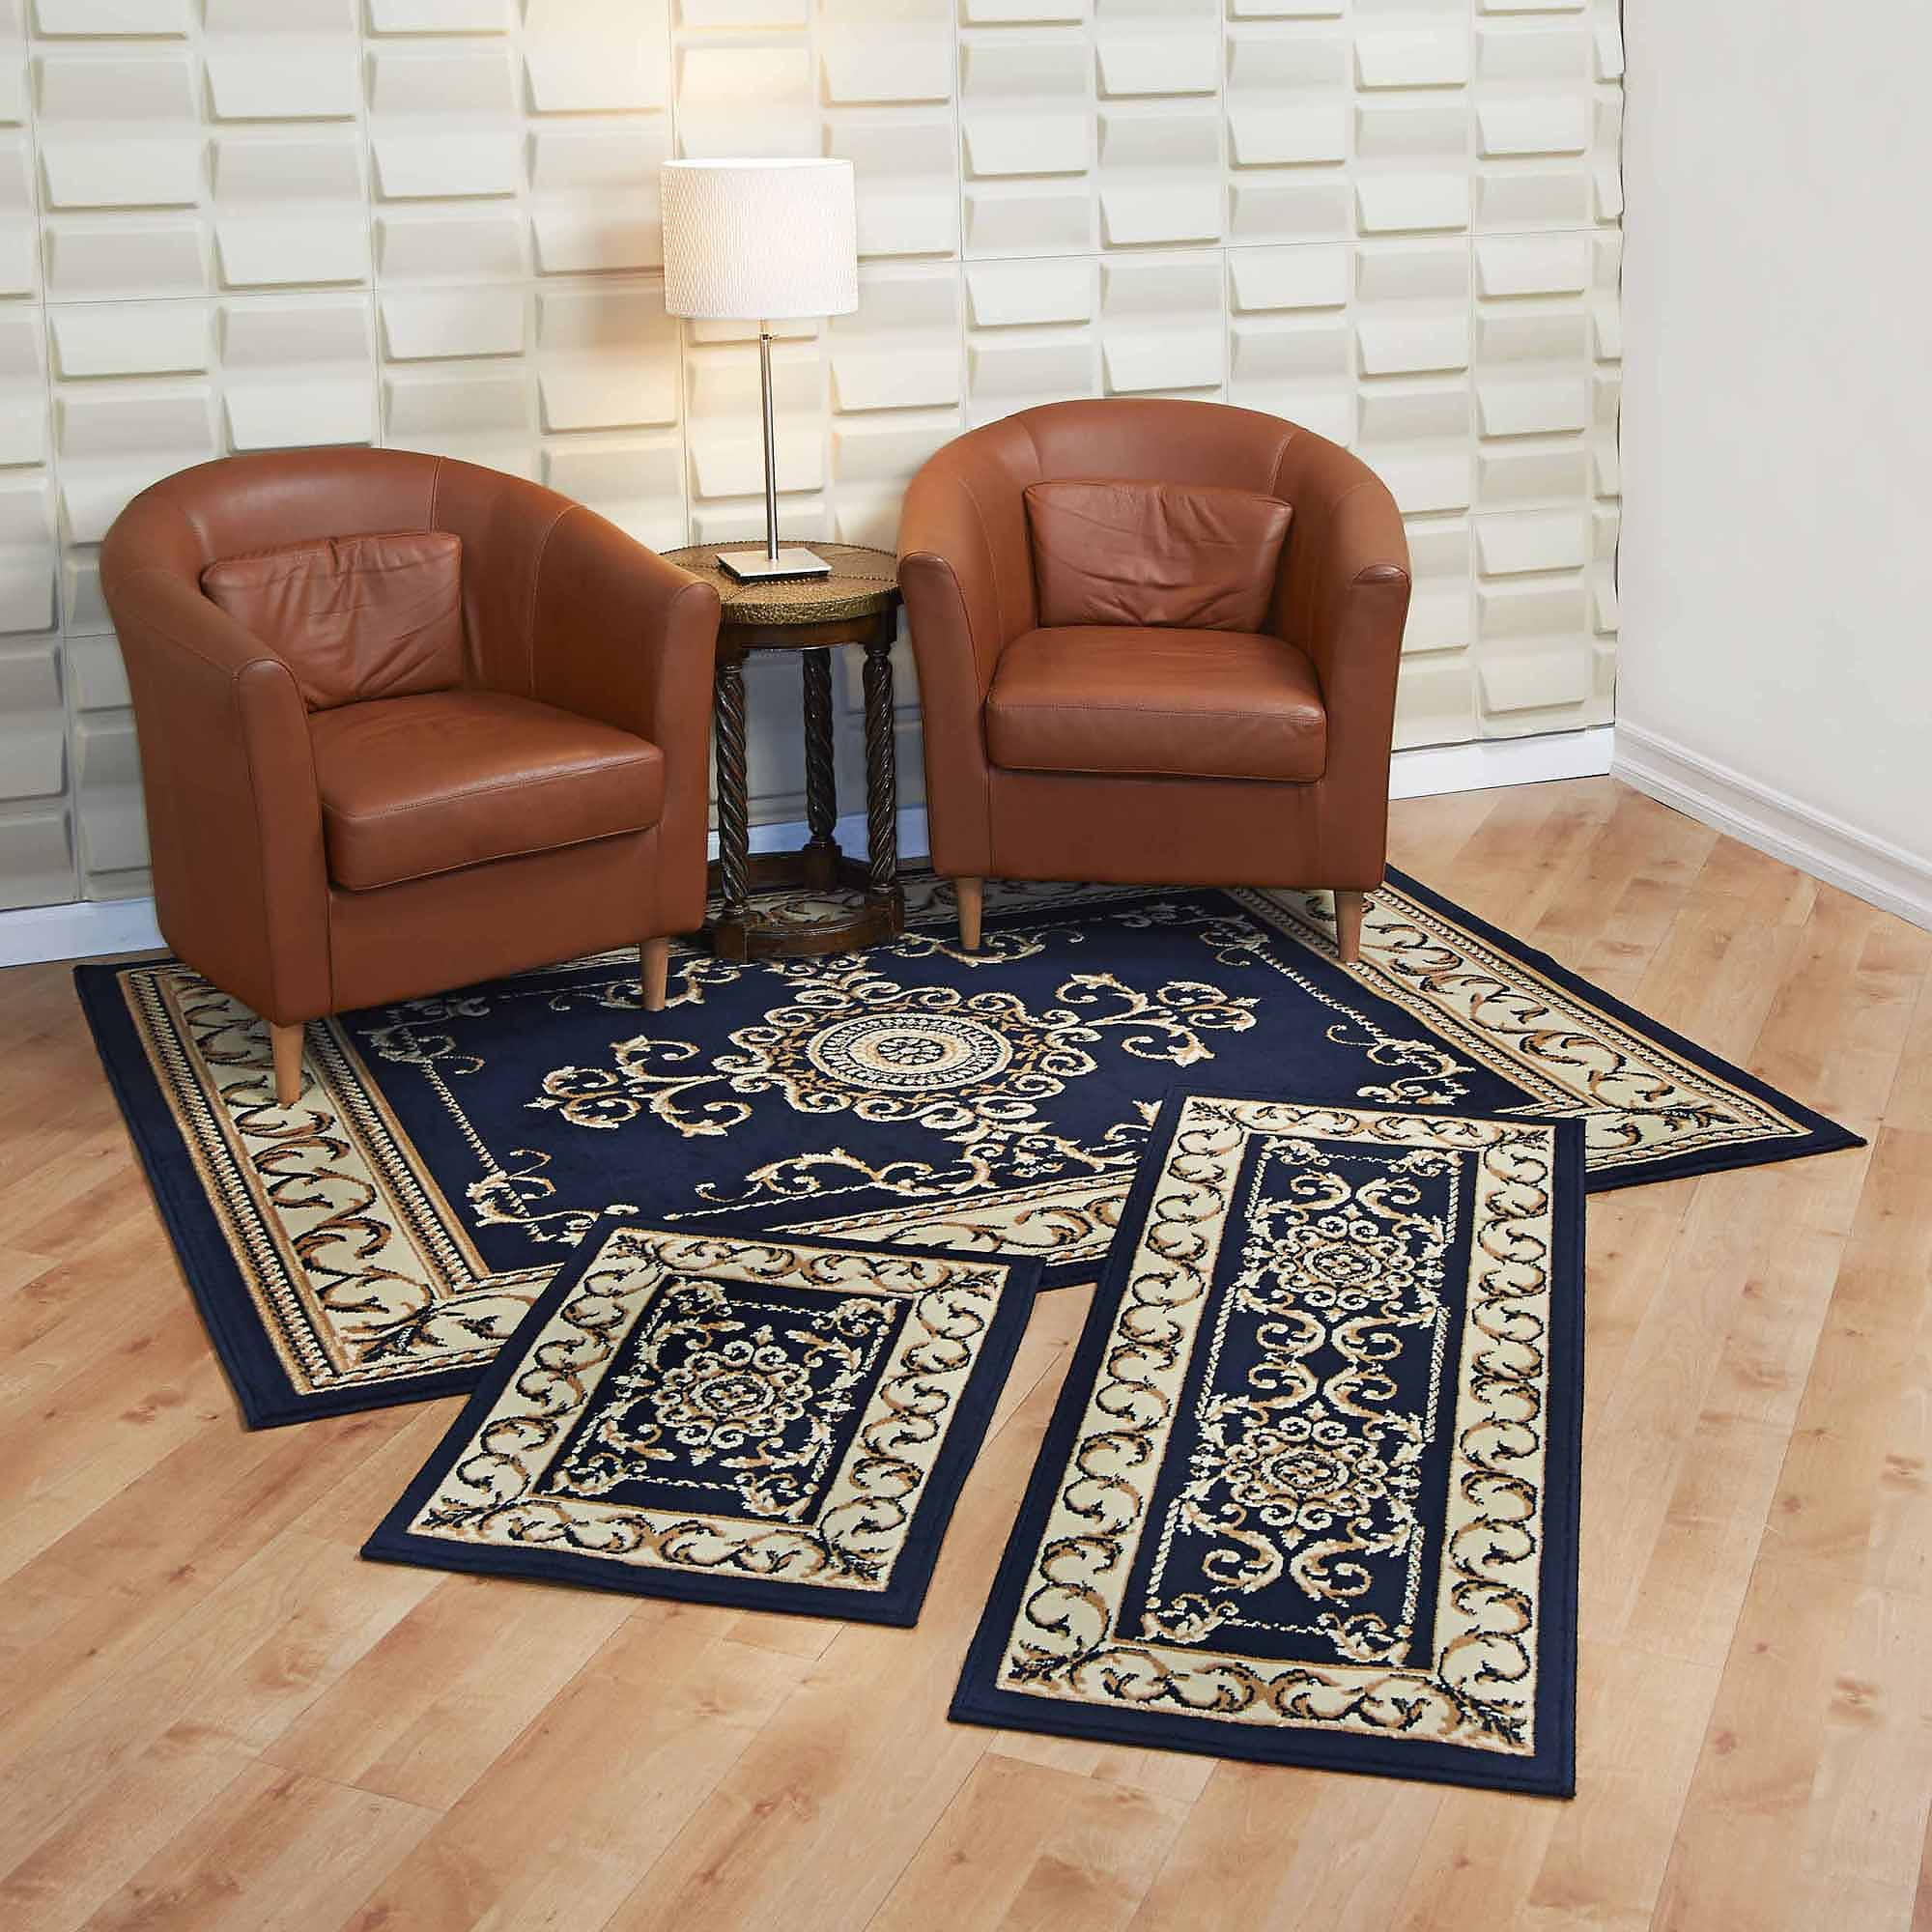 living room rug sets furniture cleveland capri 3 piece set royal crown navy area contains 5 x7 with matching 22 x59 runner and x31 mat walmart com